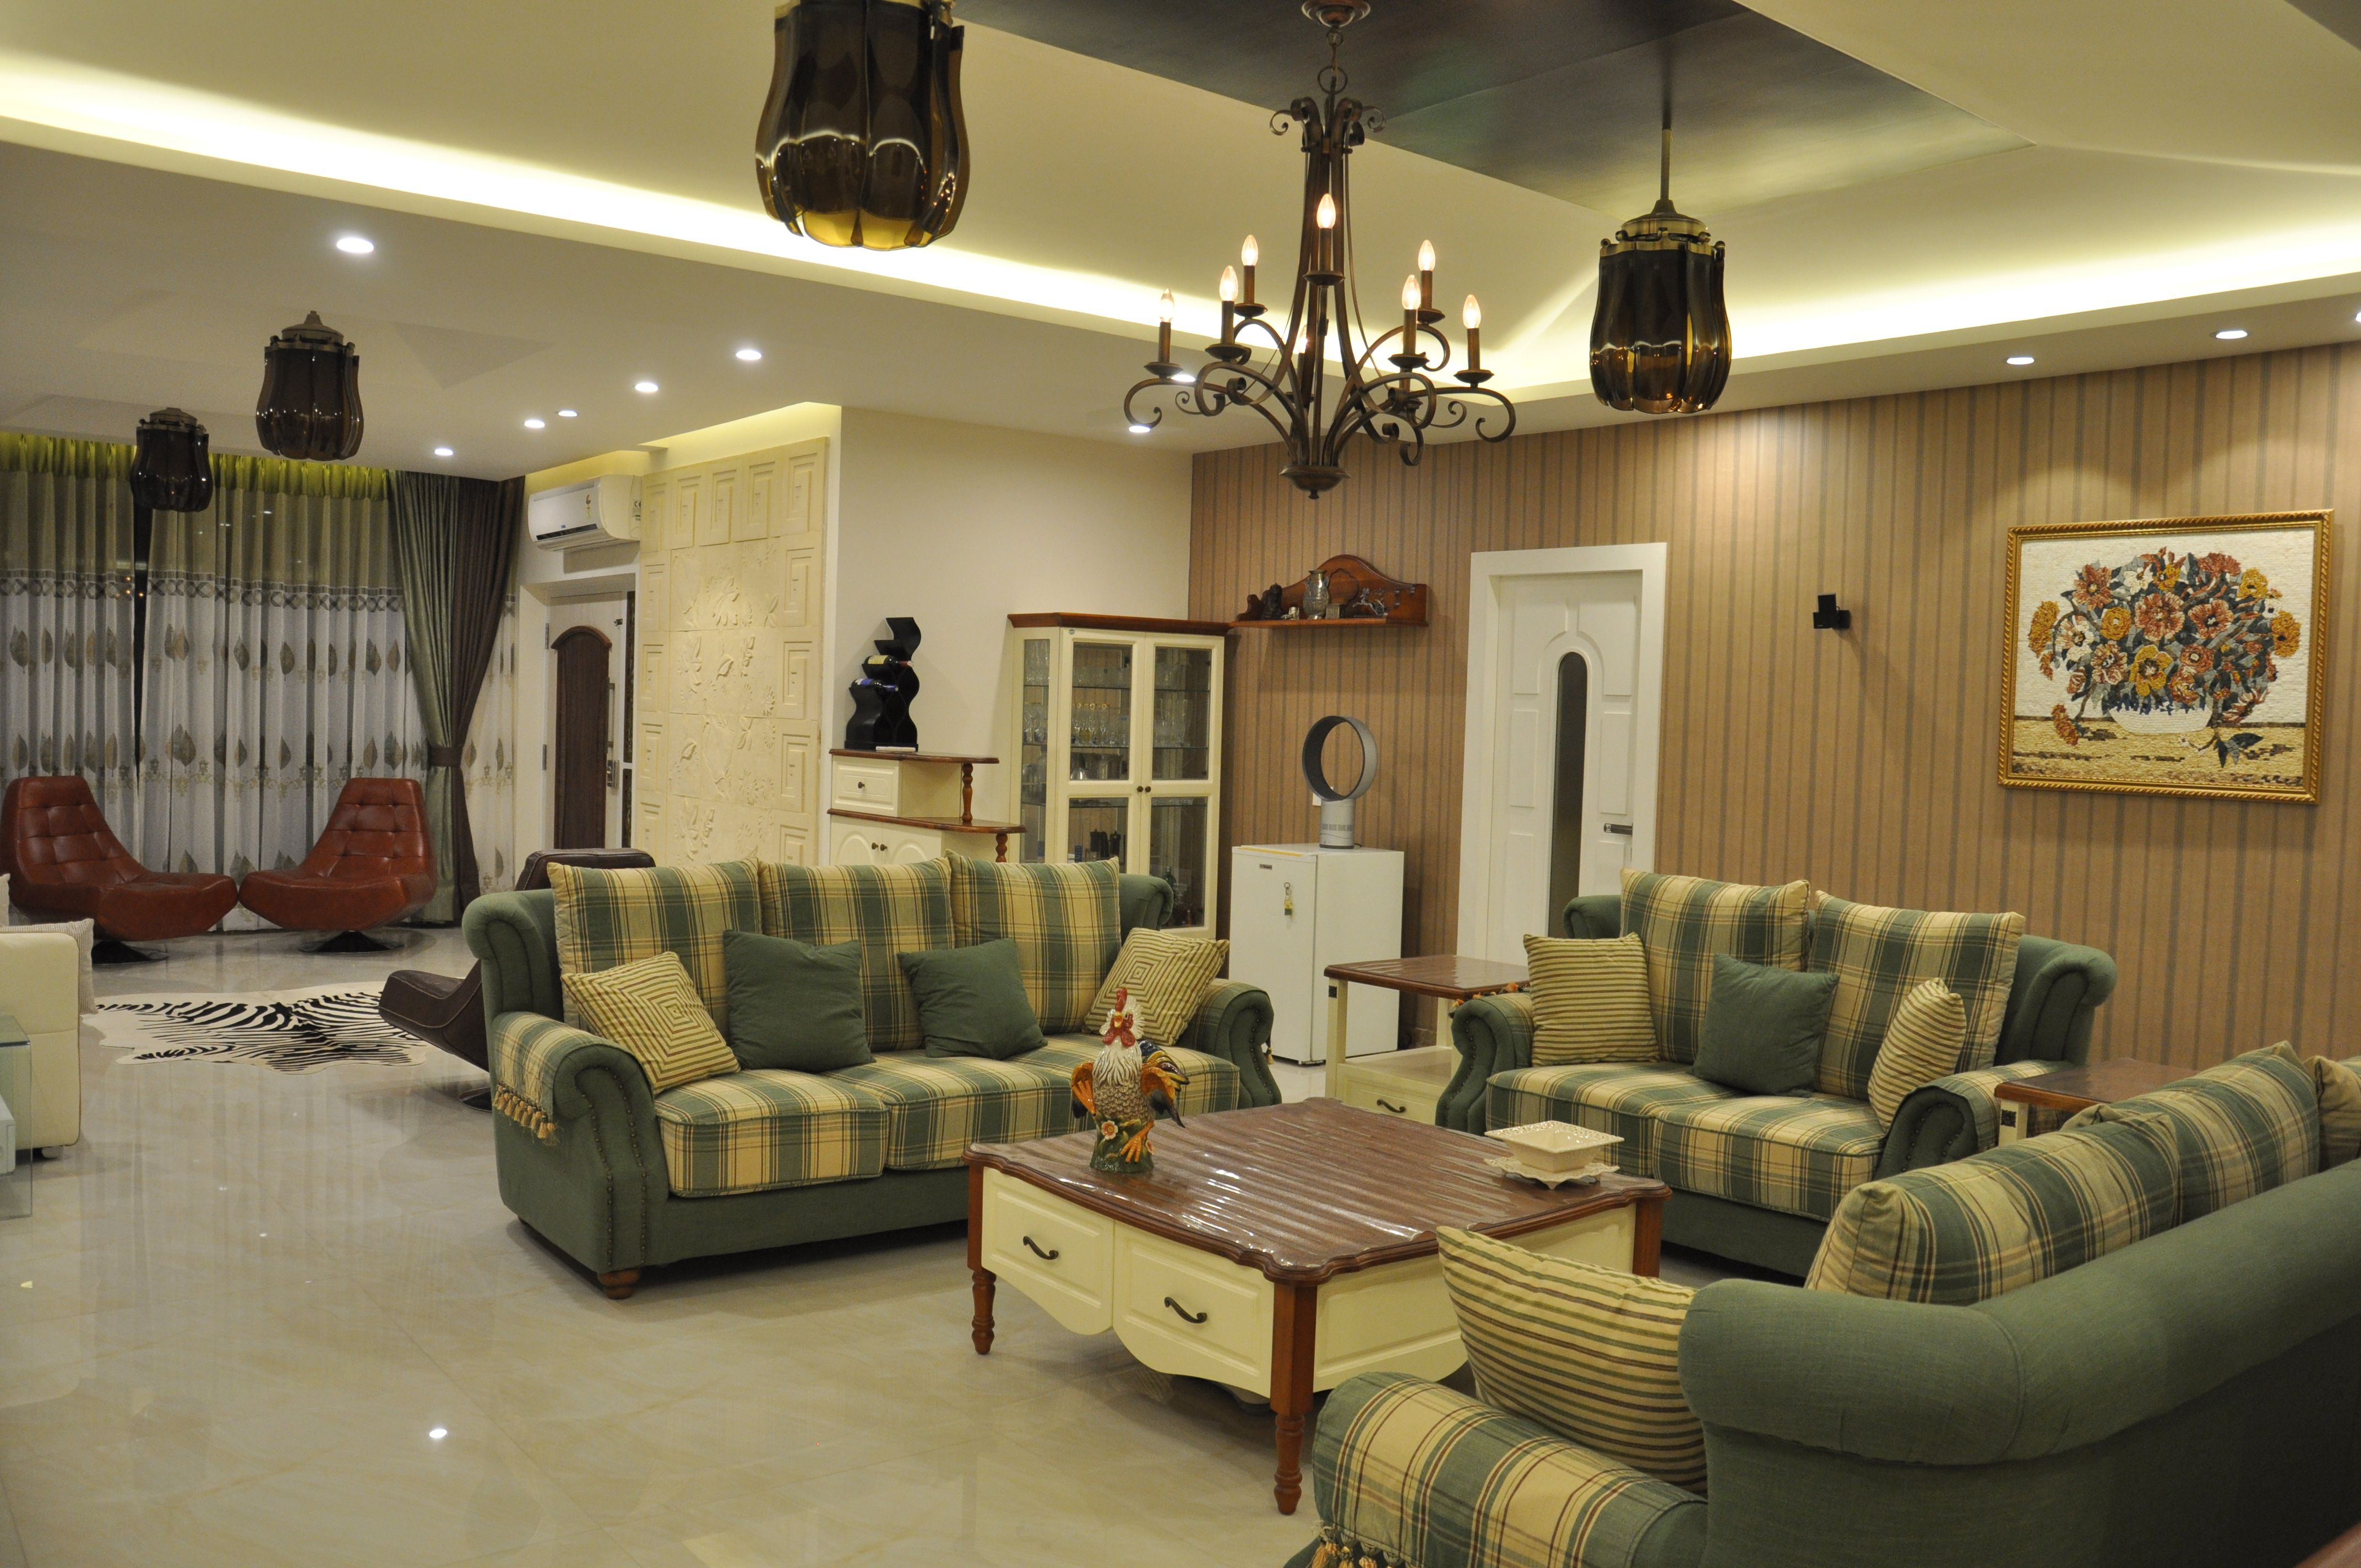 interior design ideas in hyderabad | villa interior design ideas